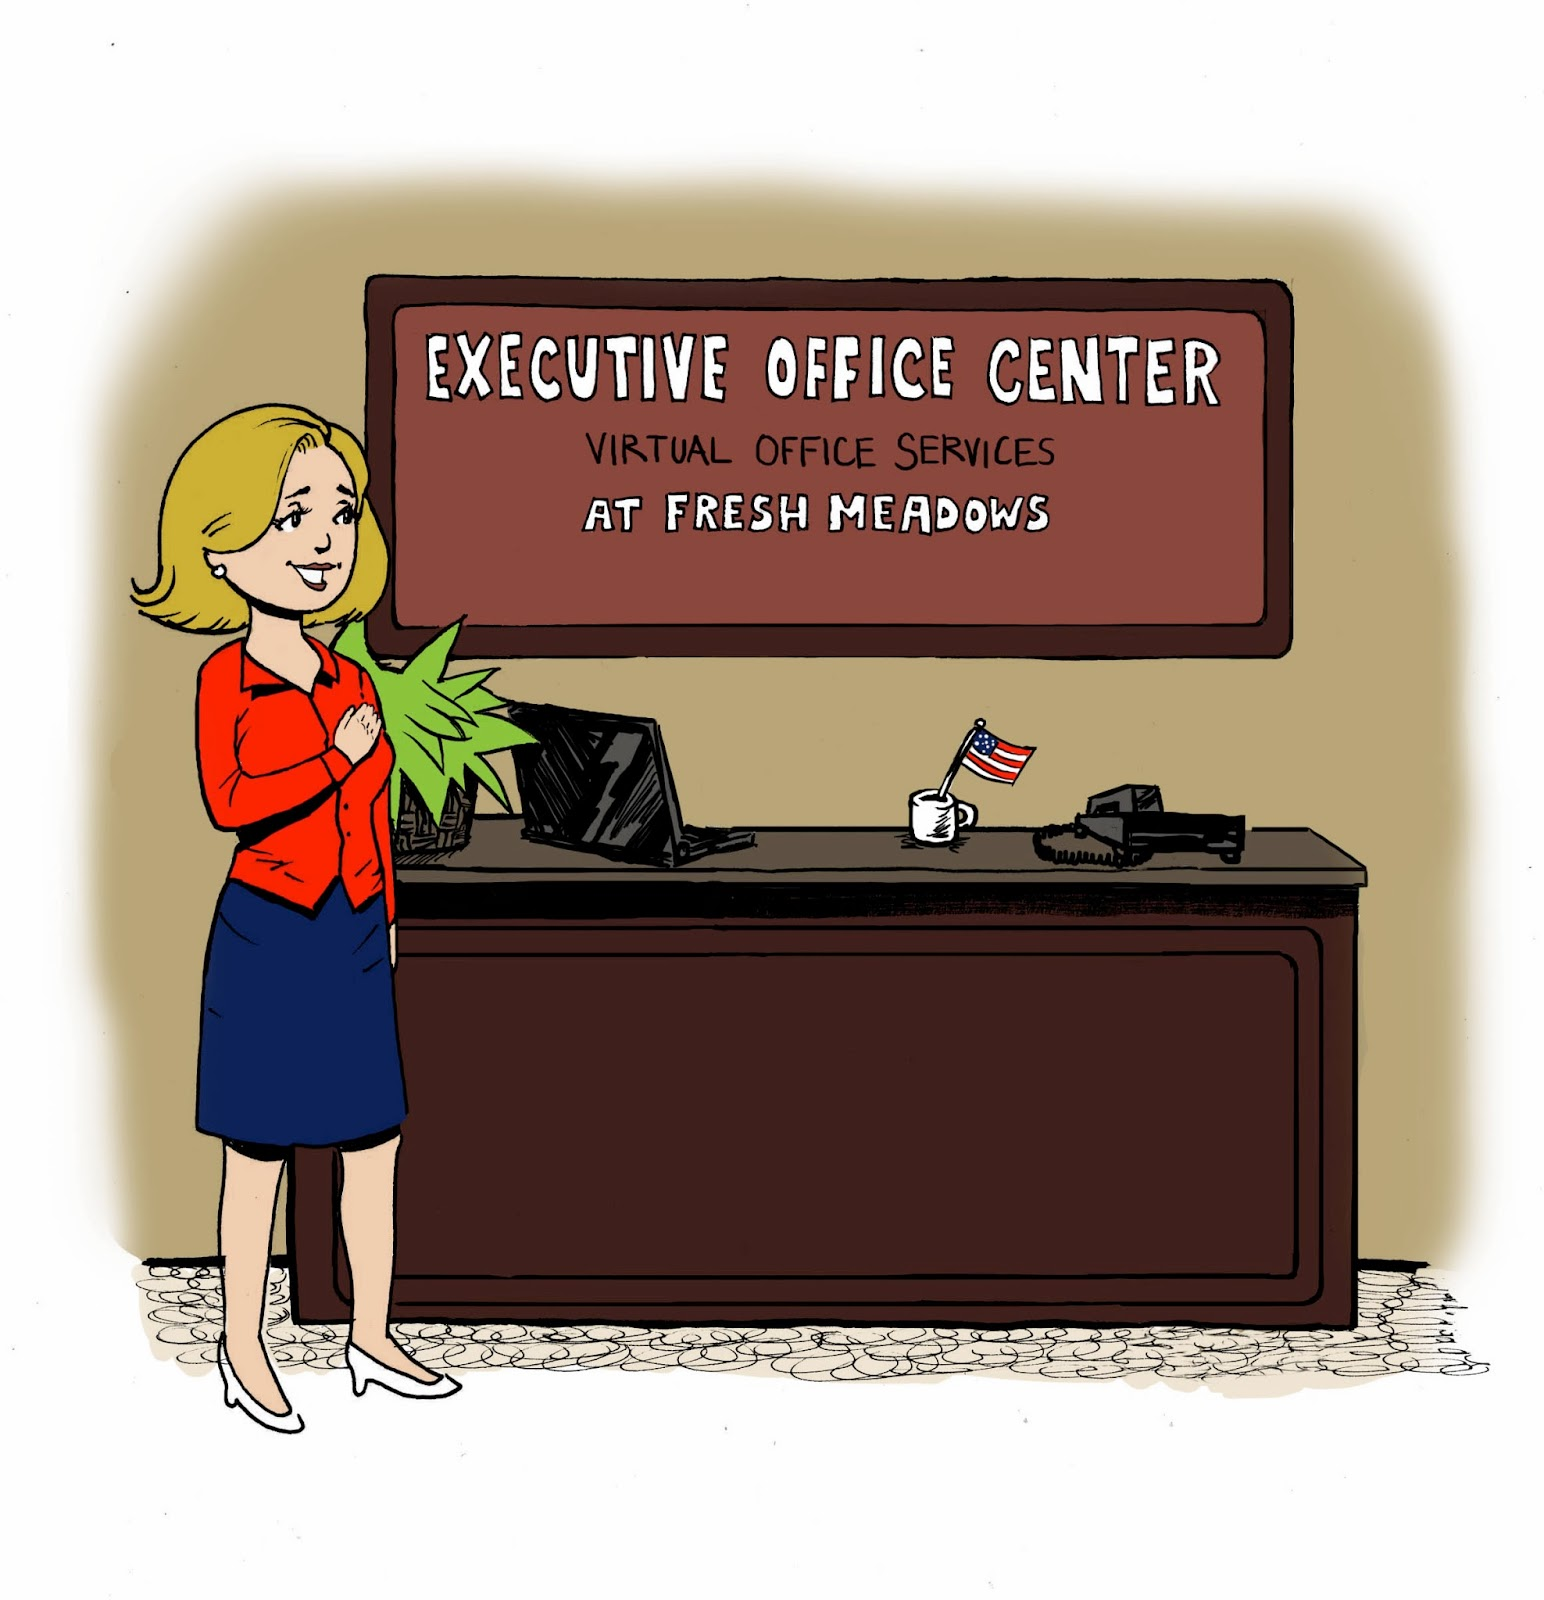 Receptionist pledges allegiance to the Executive Office Center at Fresh Meadows